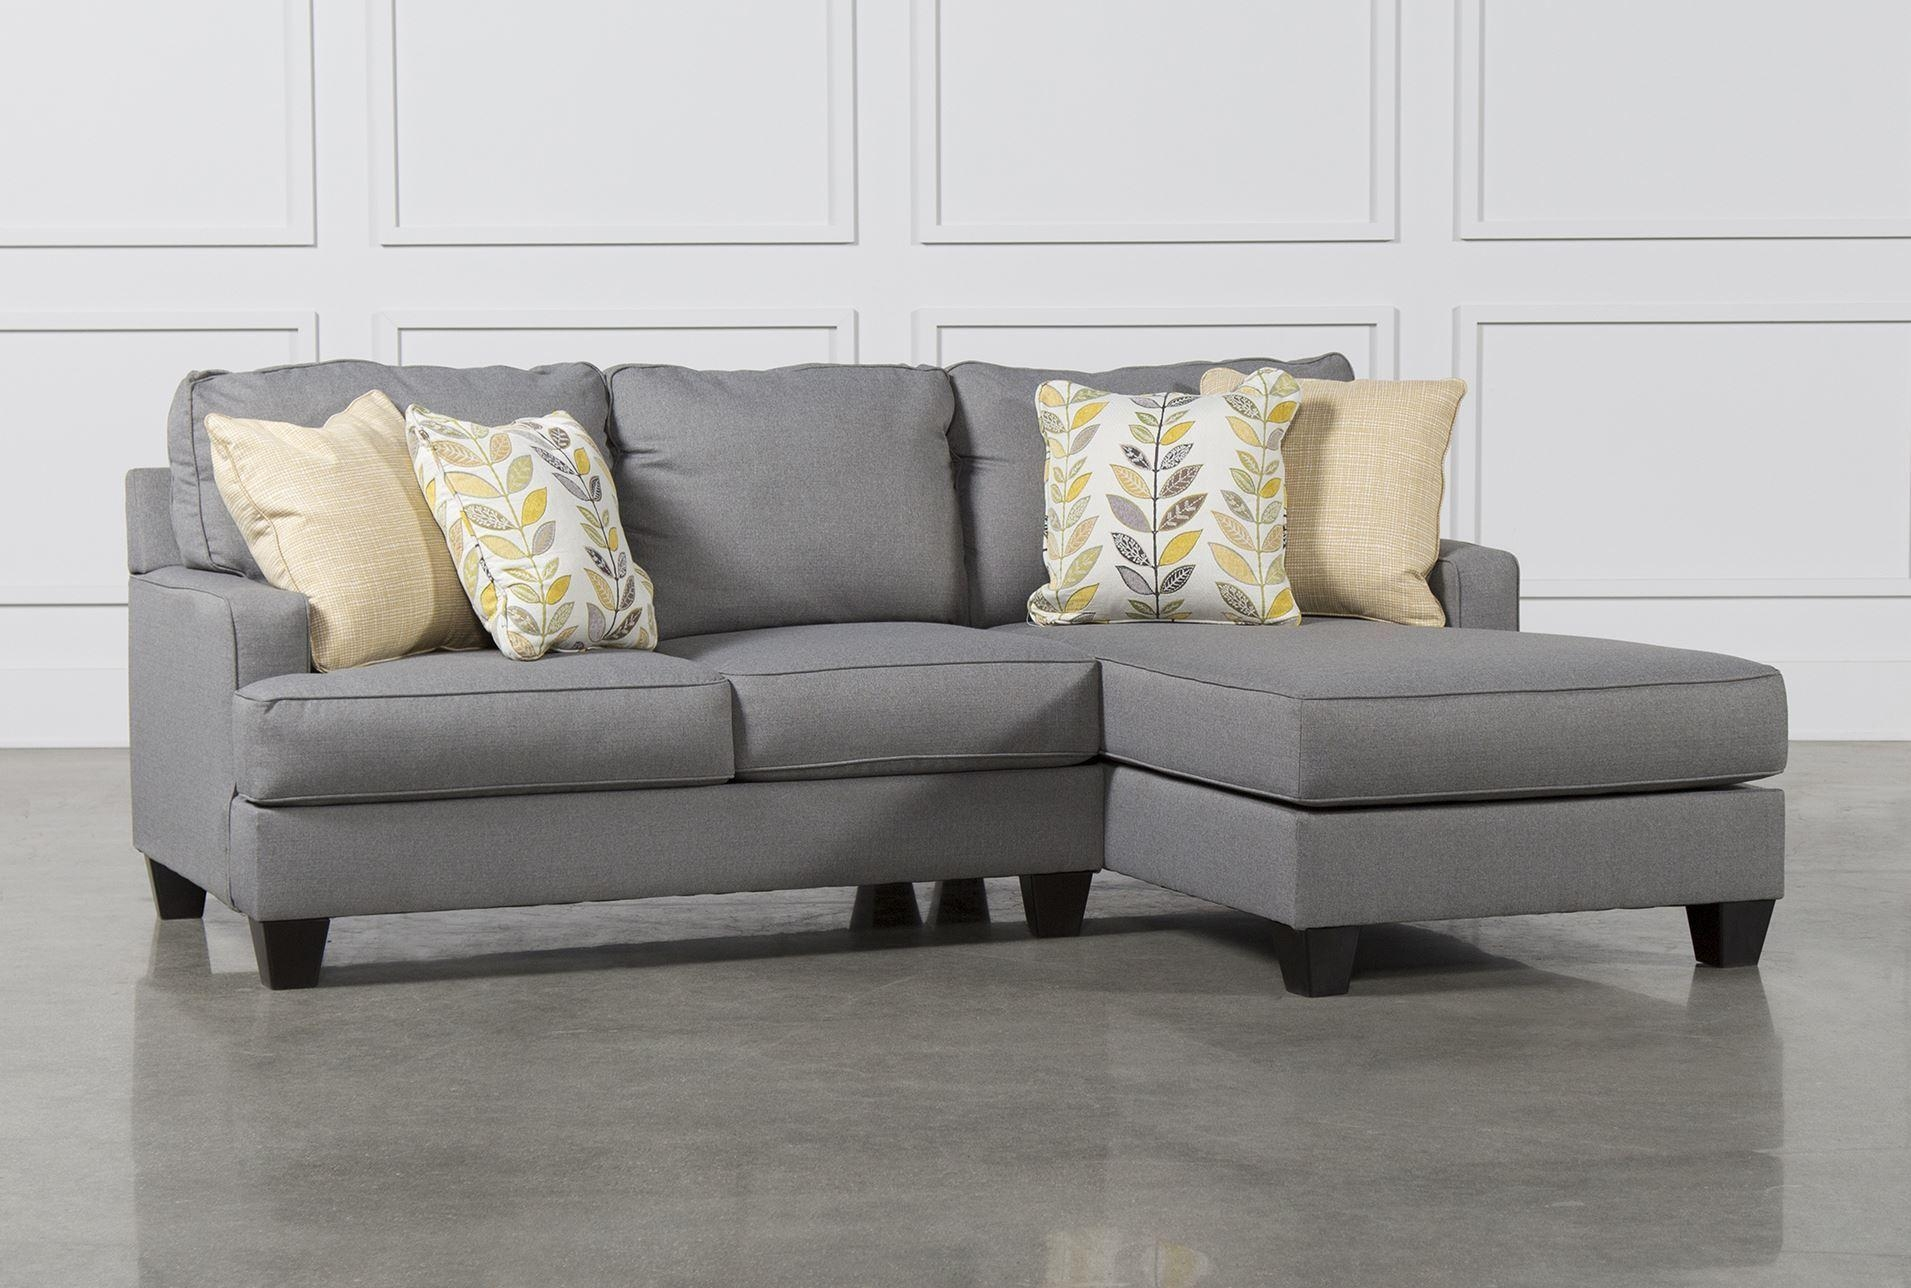 Furniture: Sectional Sofas Costco | Sectional Couches Costco Throughout Small 2 Piece Sectional Sofas (Image 9 of 23)